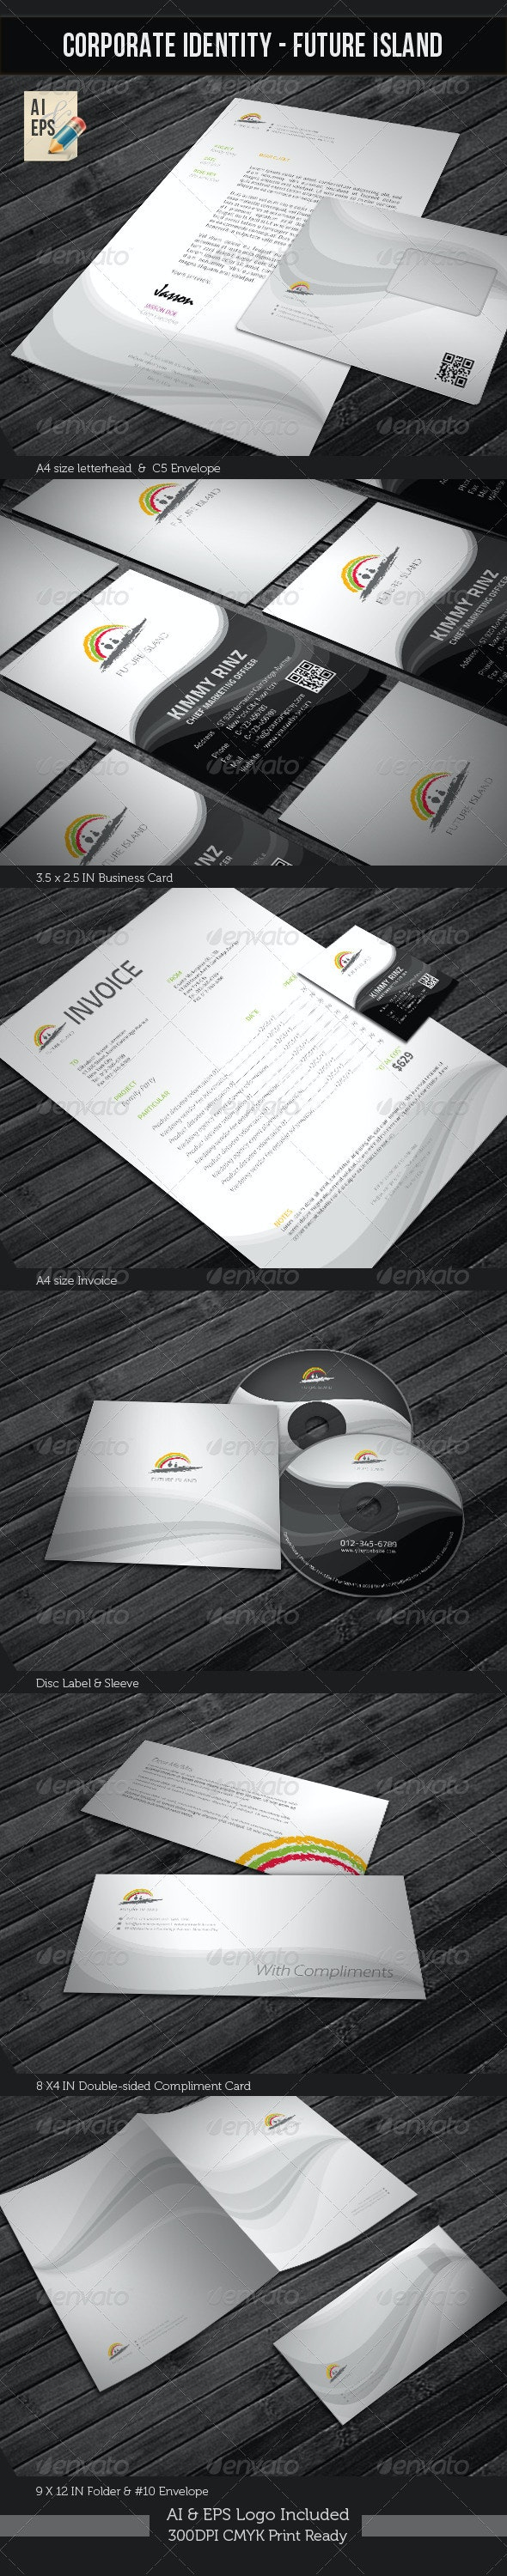 Corporate Identity Package - Future Island - Stationery Print Templates